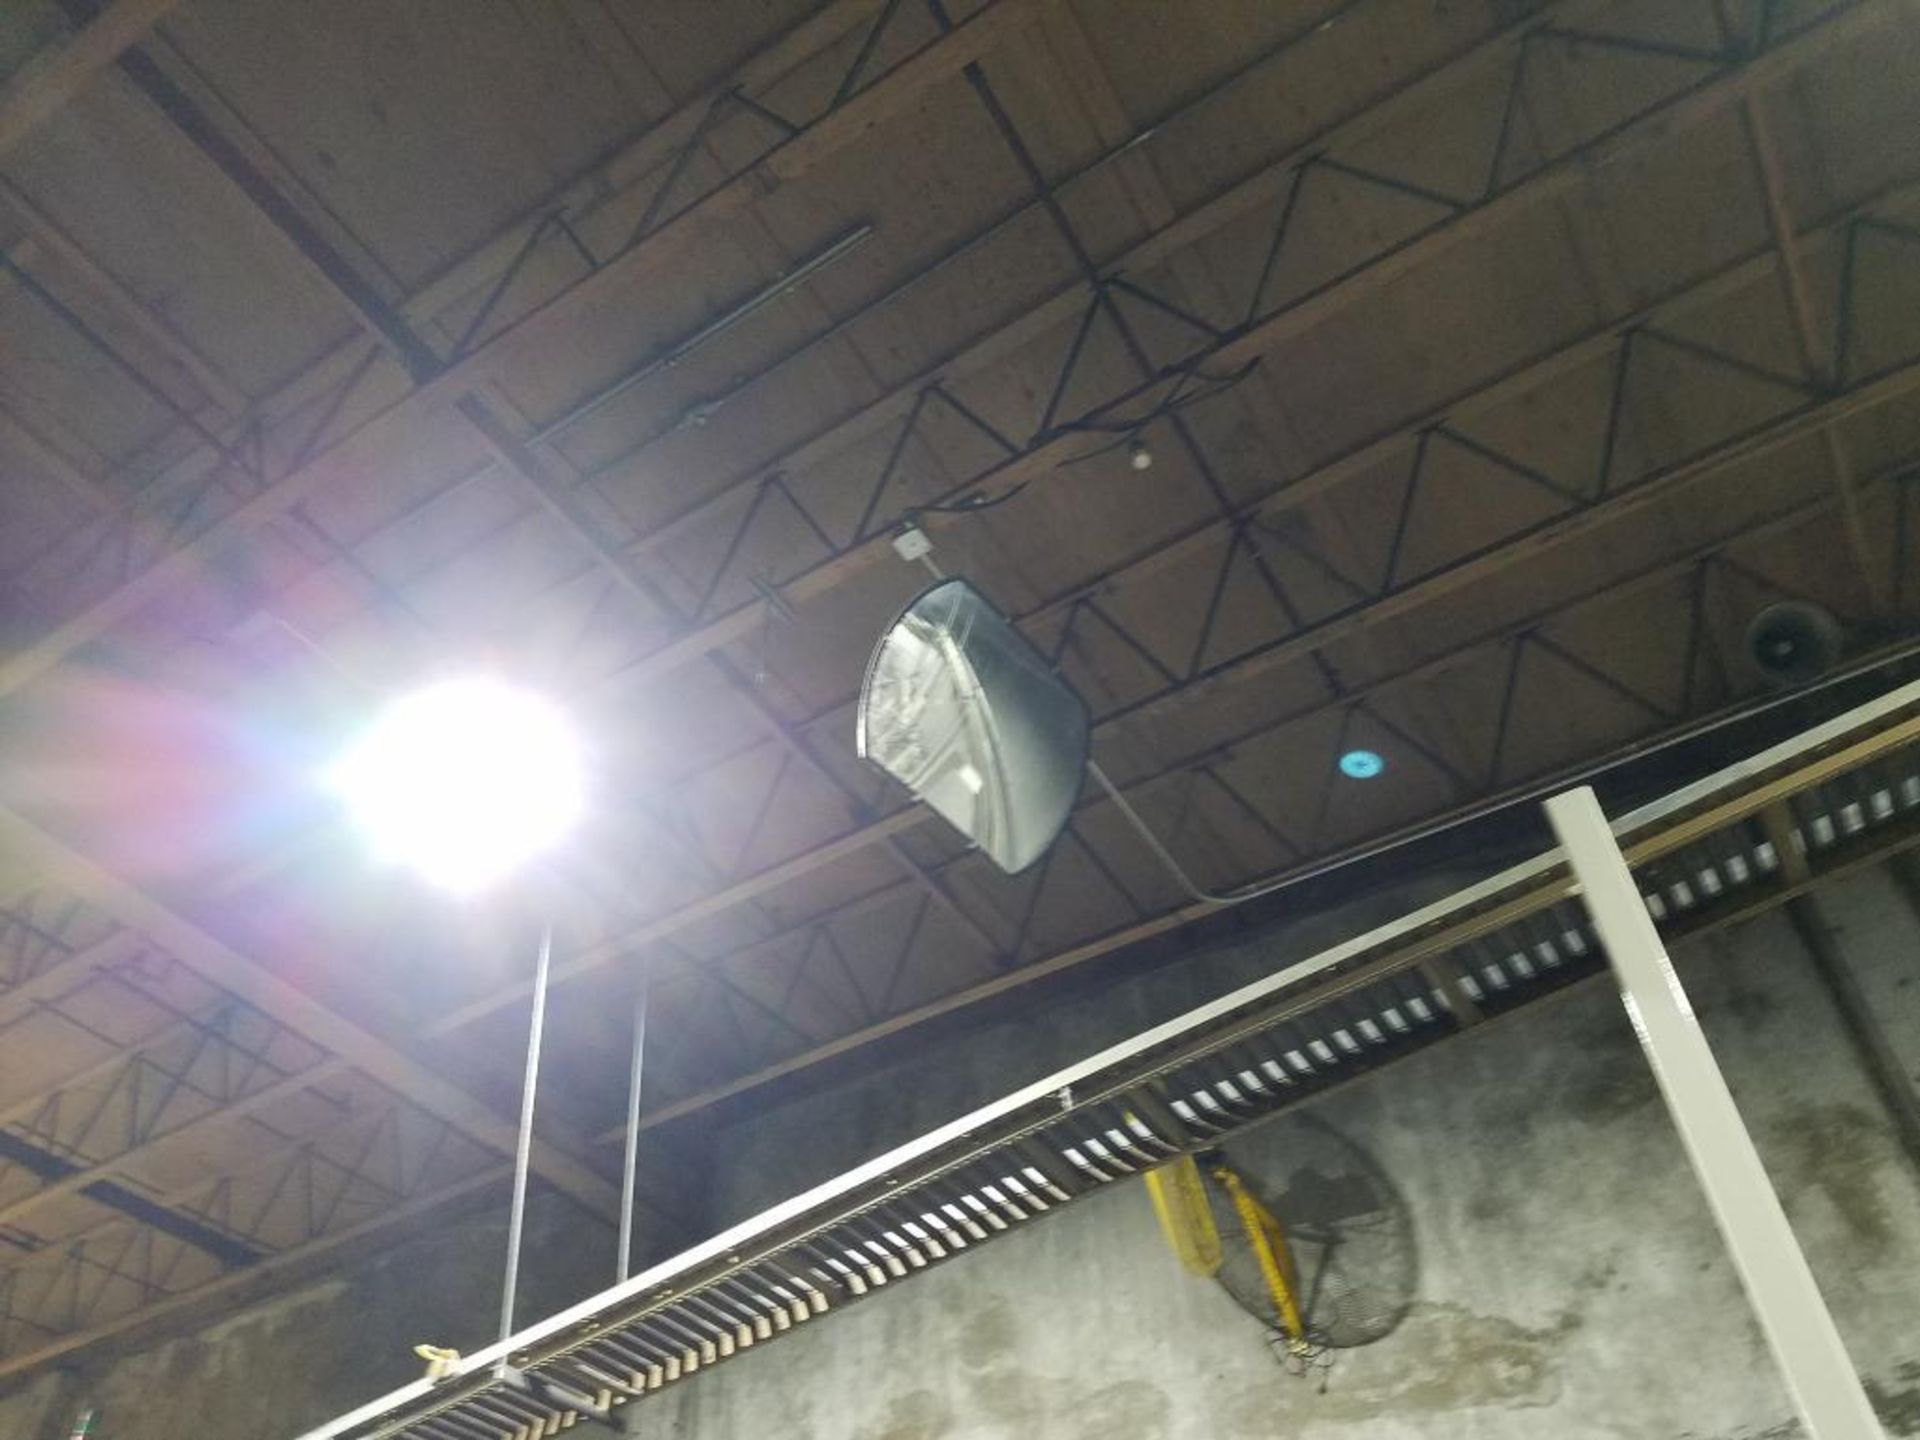 ceiling mounted safety mirrors - Image 4 of 4